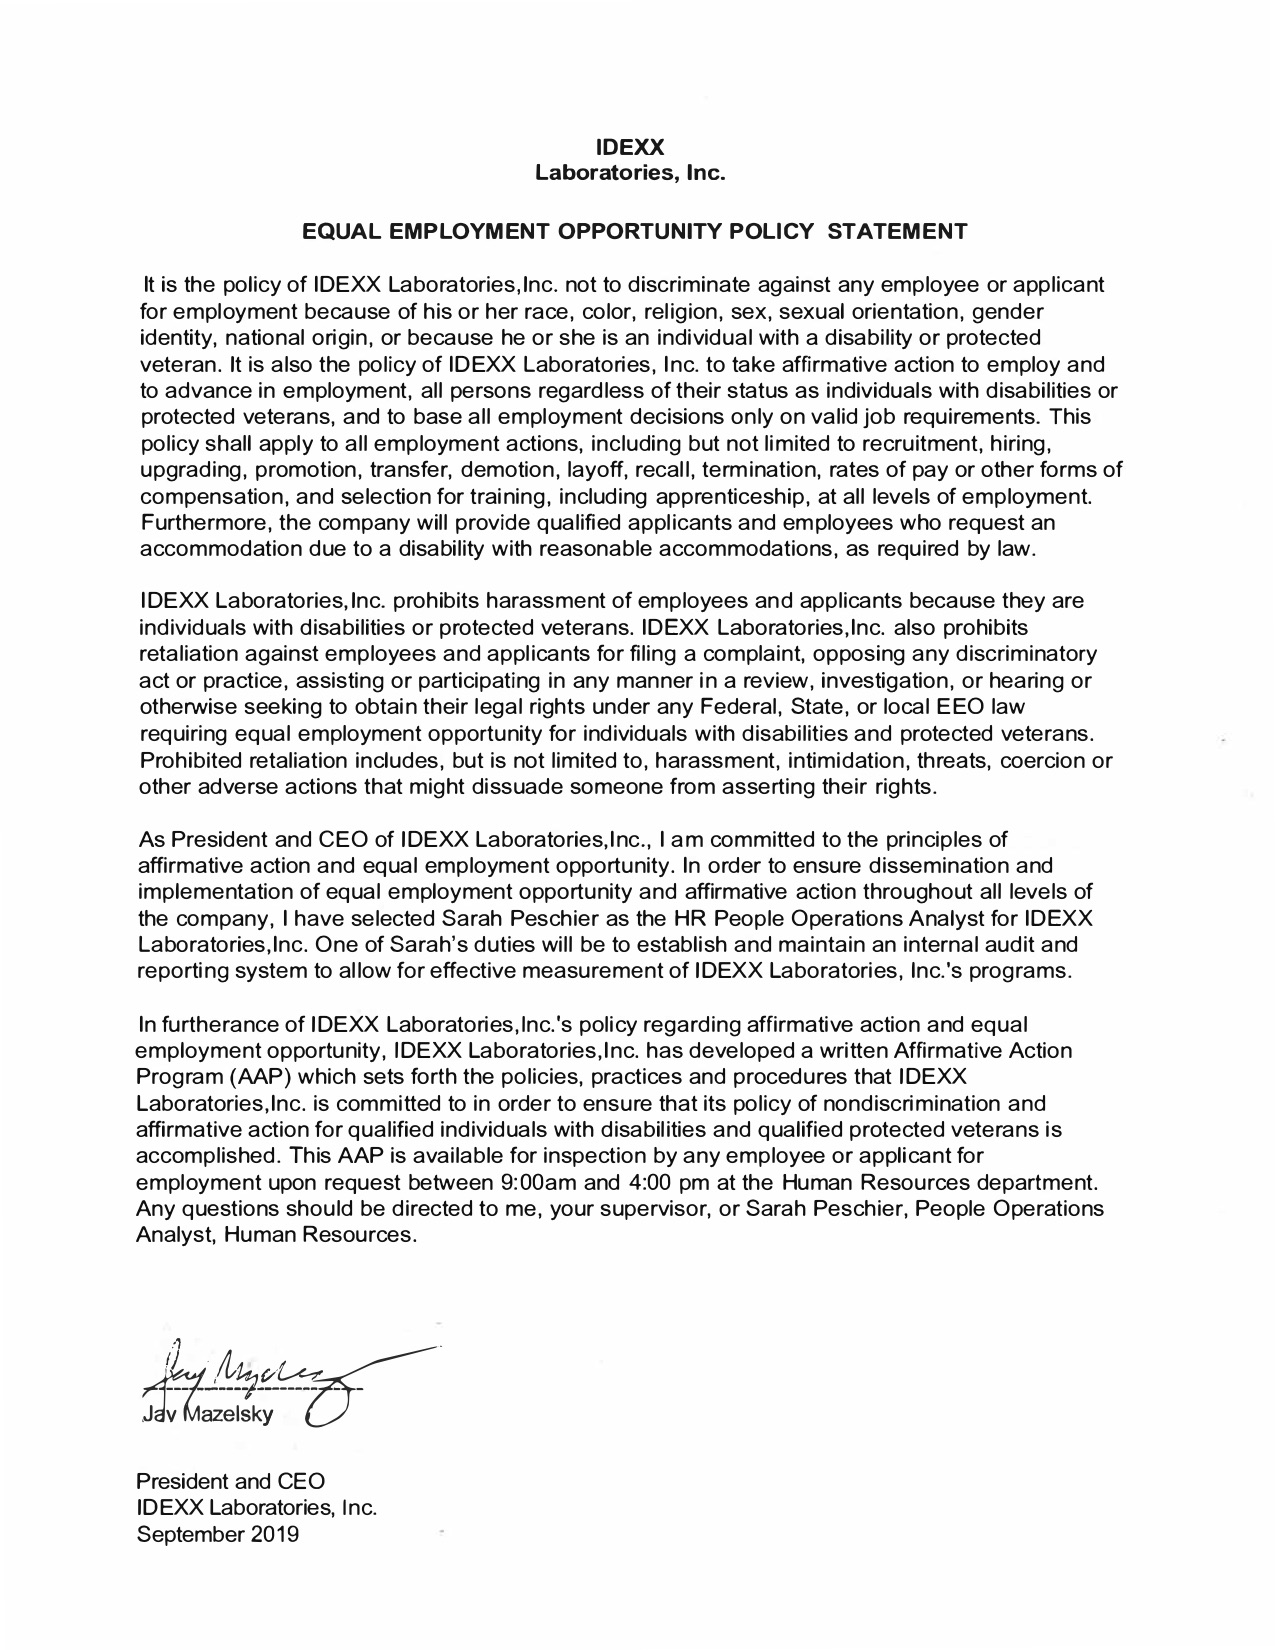 EEO statement - JM